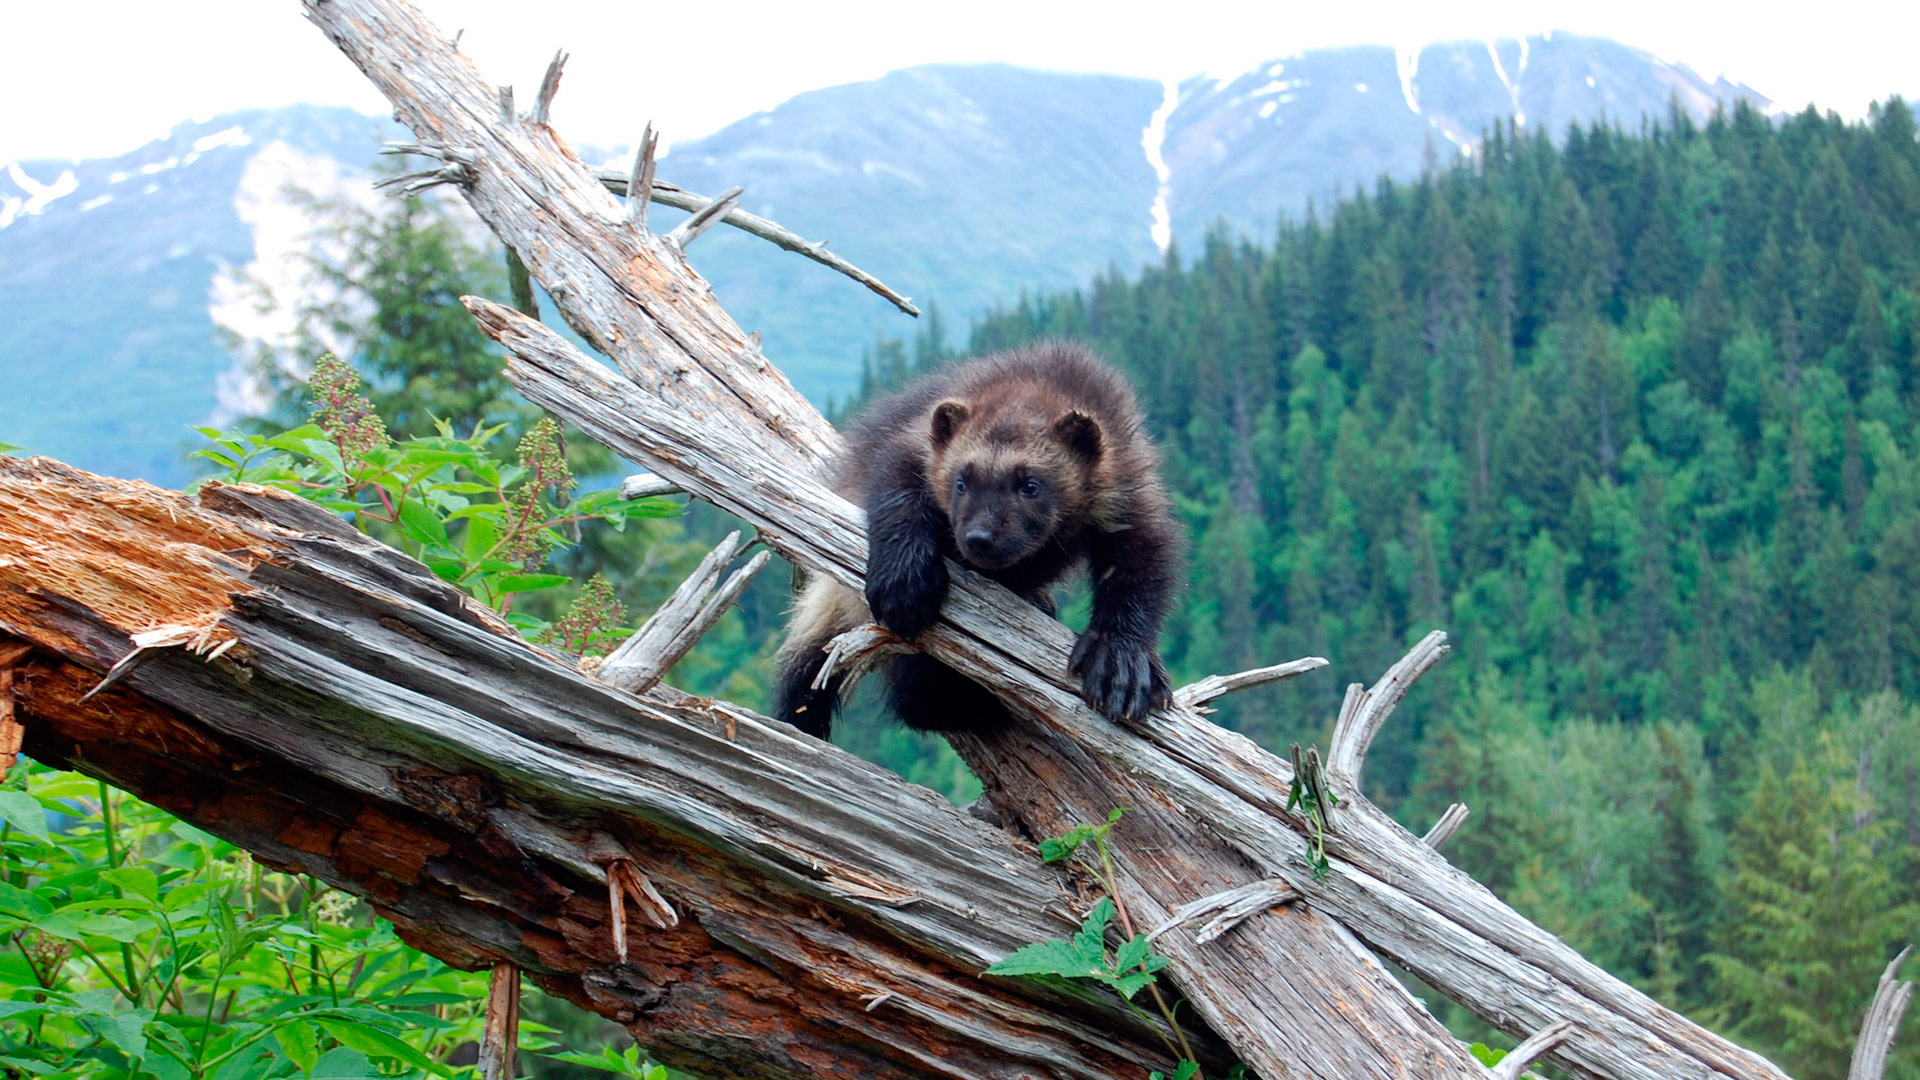 wolverine chasing the phantom wolverine facts nature pbs